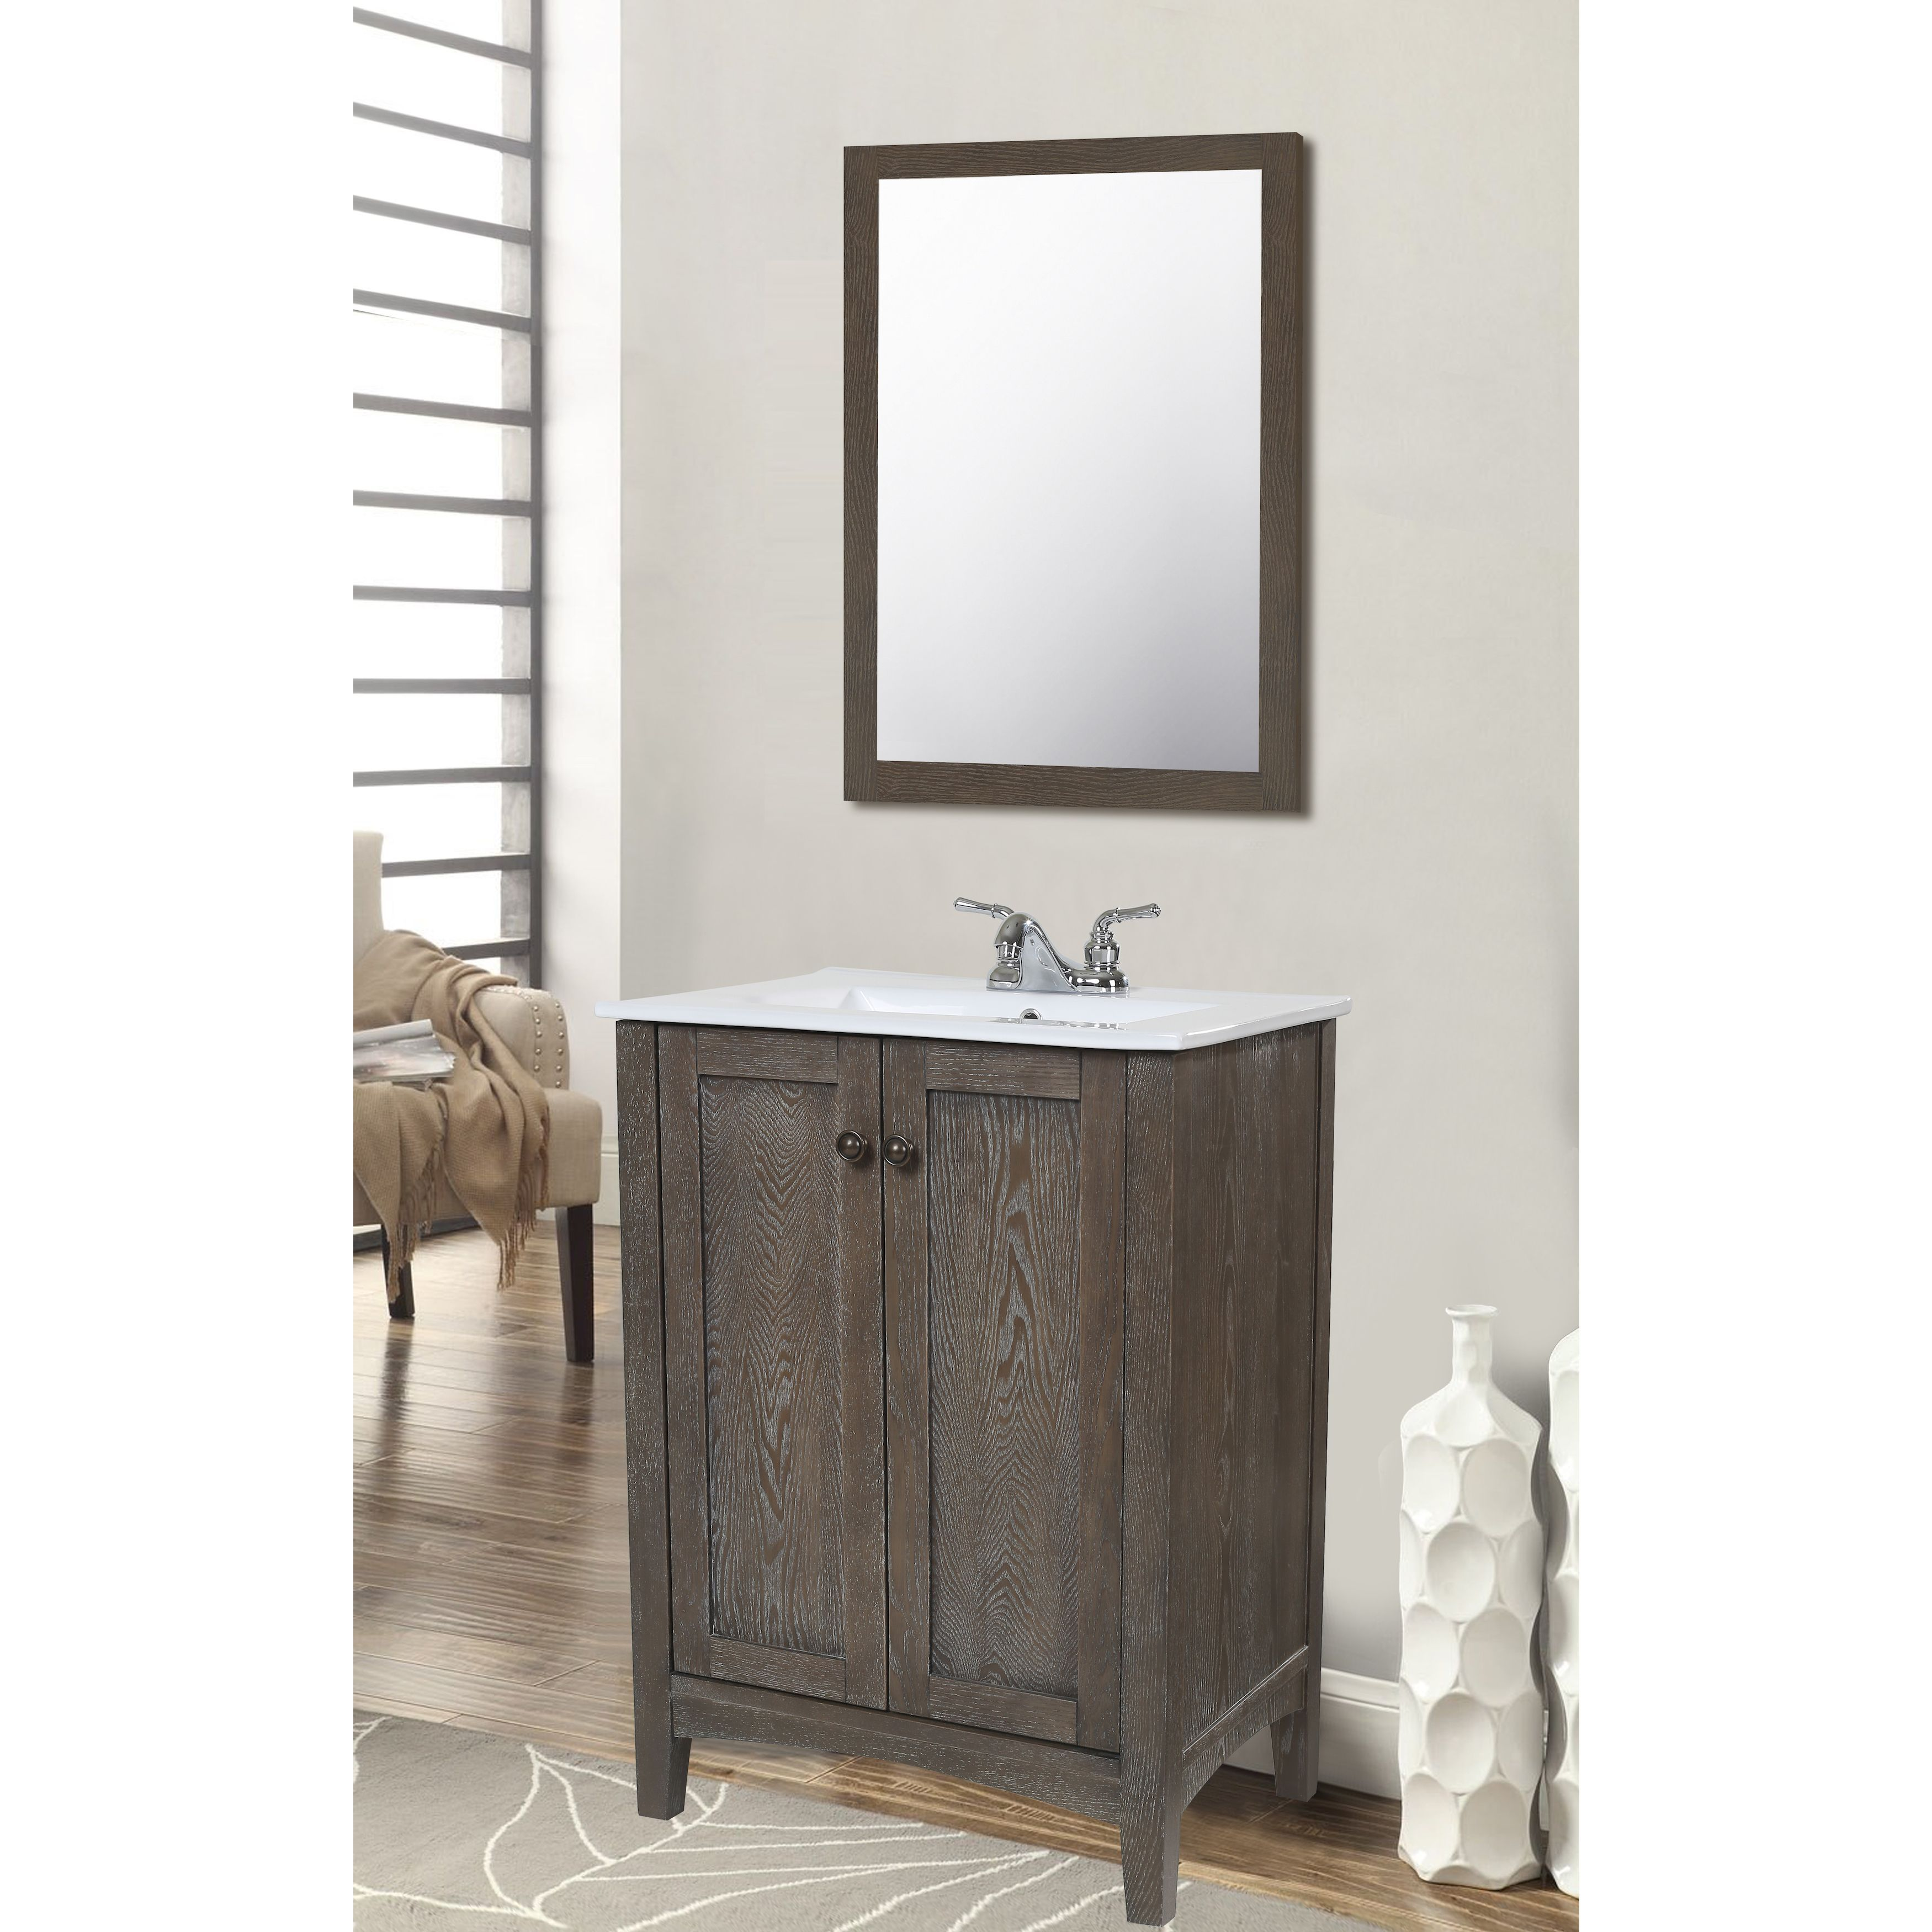 Single Vanities,21 30 Inches Bathroom Vanities: Add Style And Functionality  To Your Bathroom With A Bathroom Vanity. Choose From A Wide Selection Of  Great ...